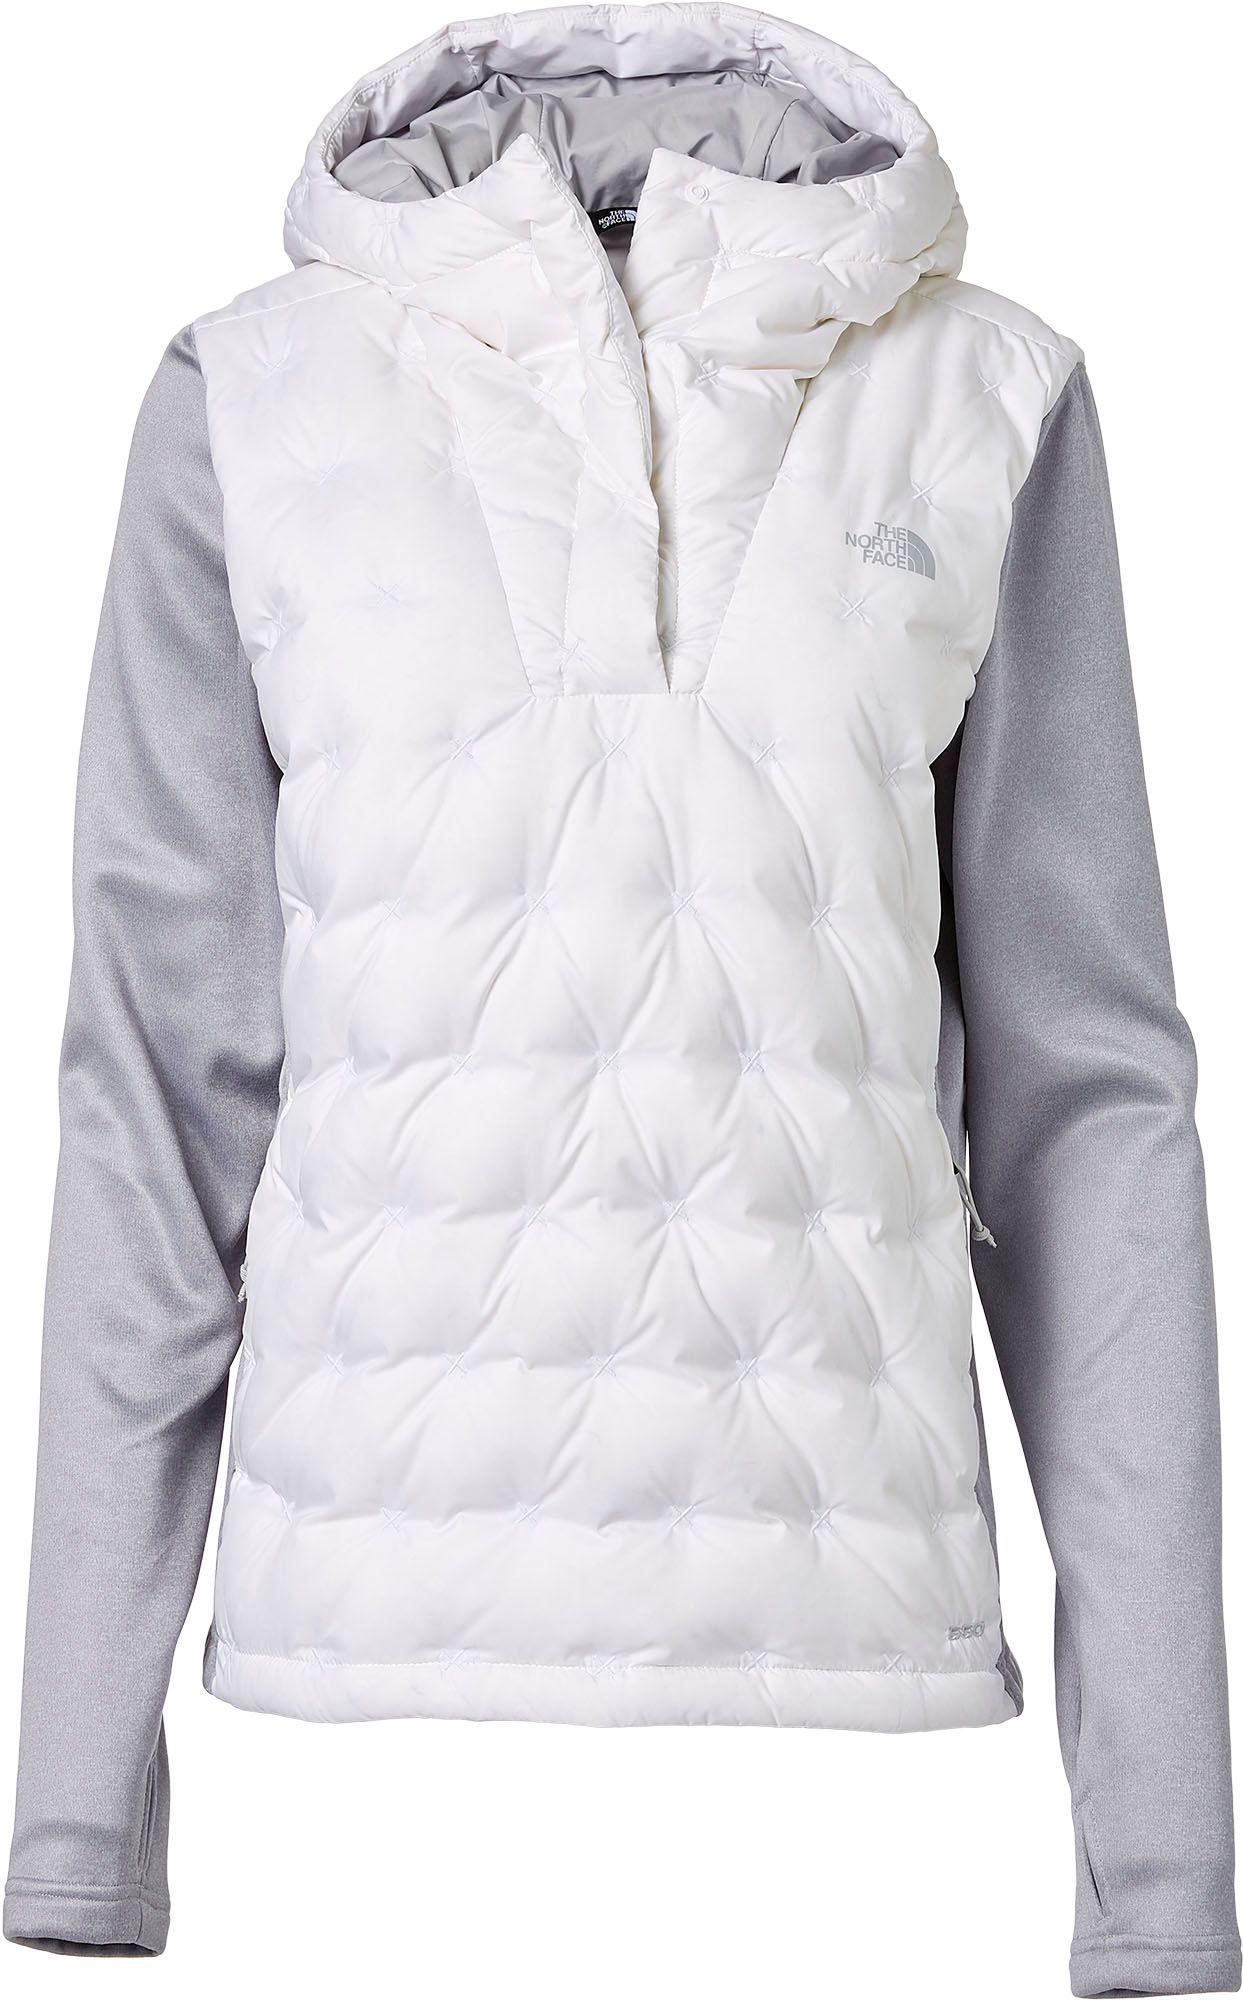 004b108fe The North Face White Mash-up Insulated Pullover